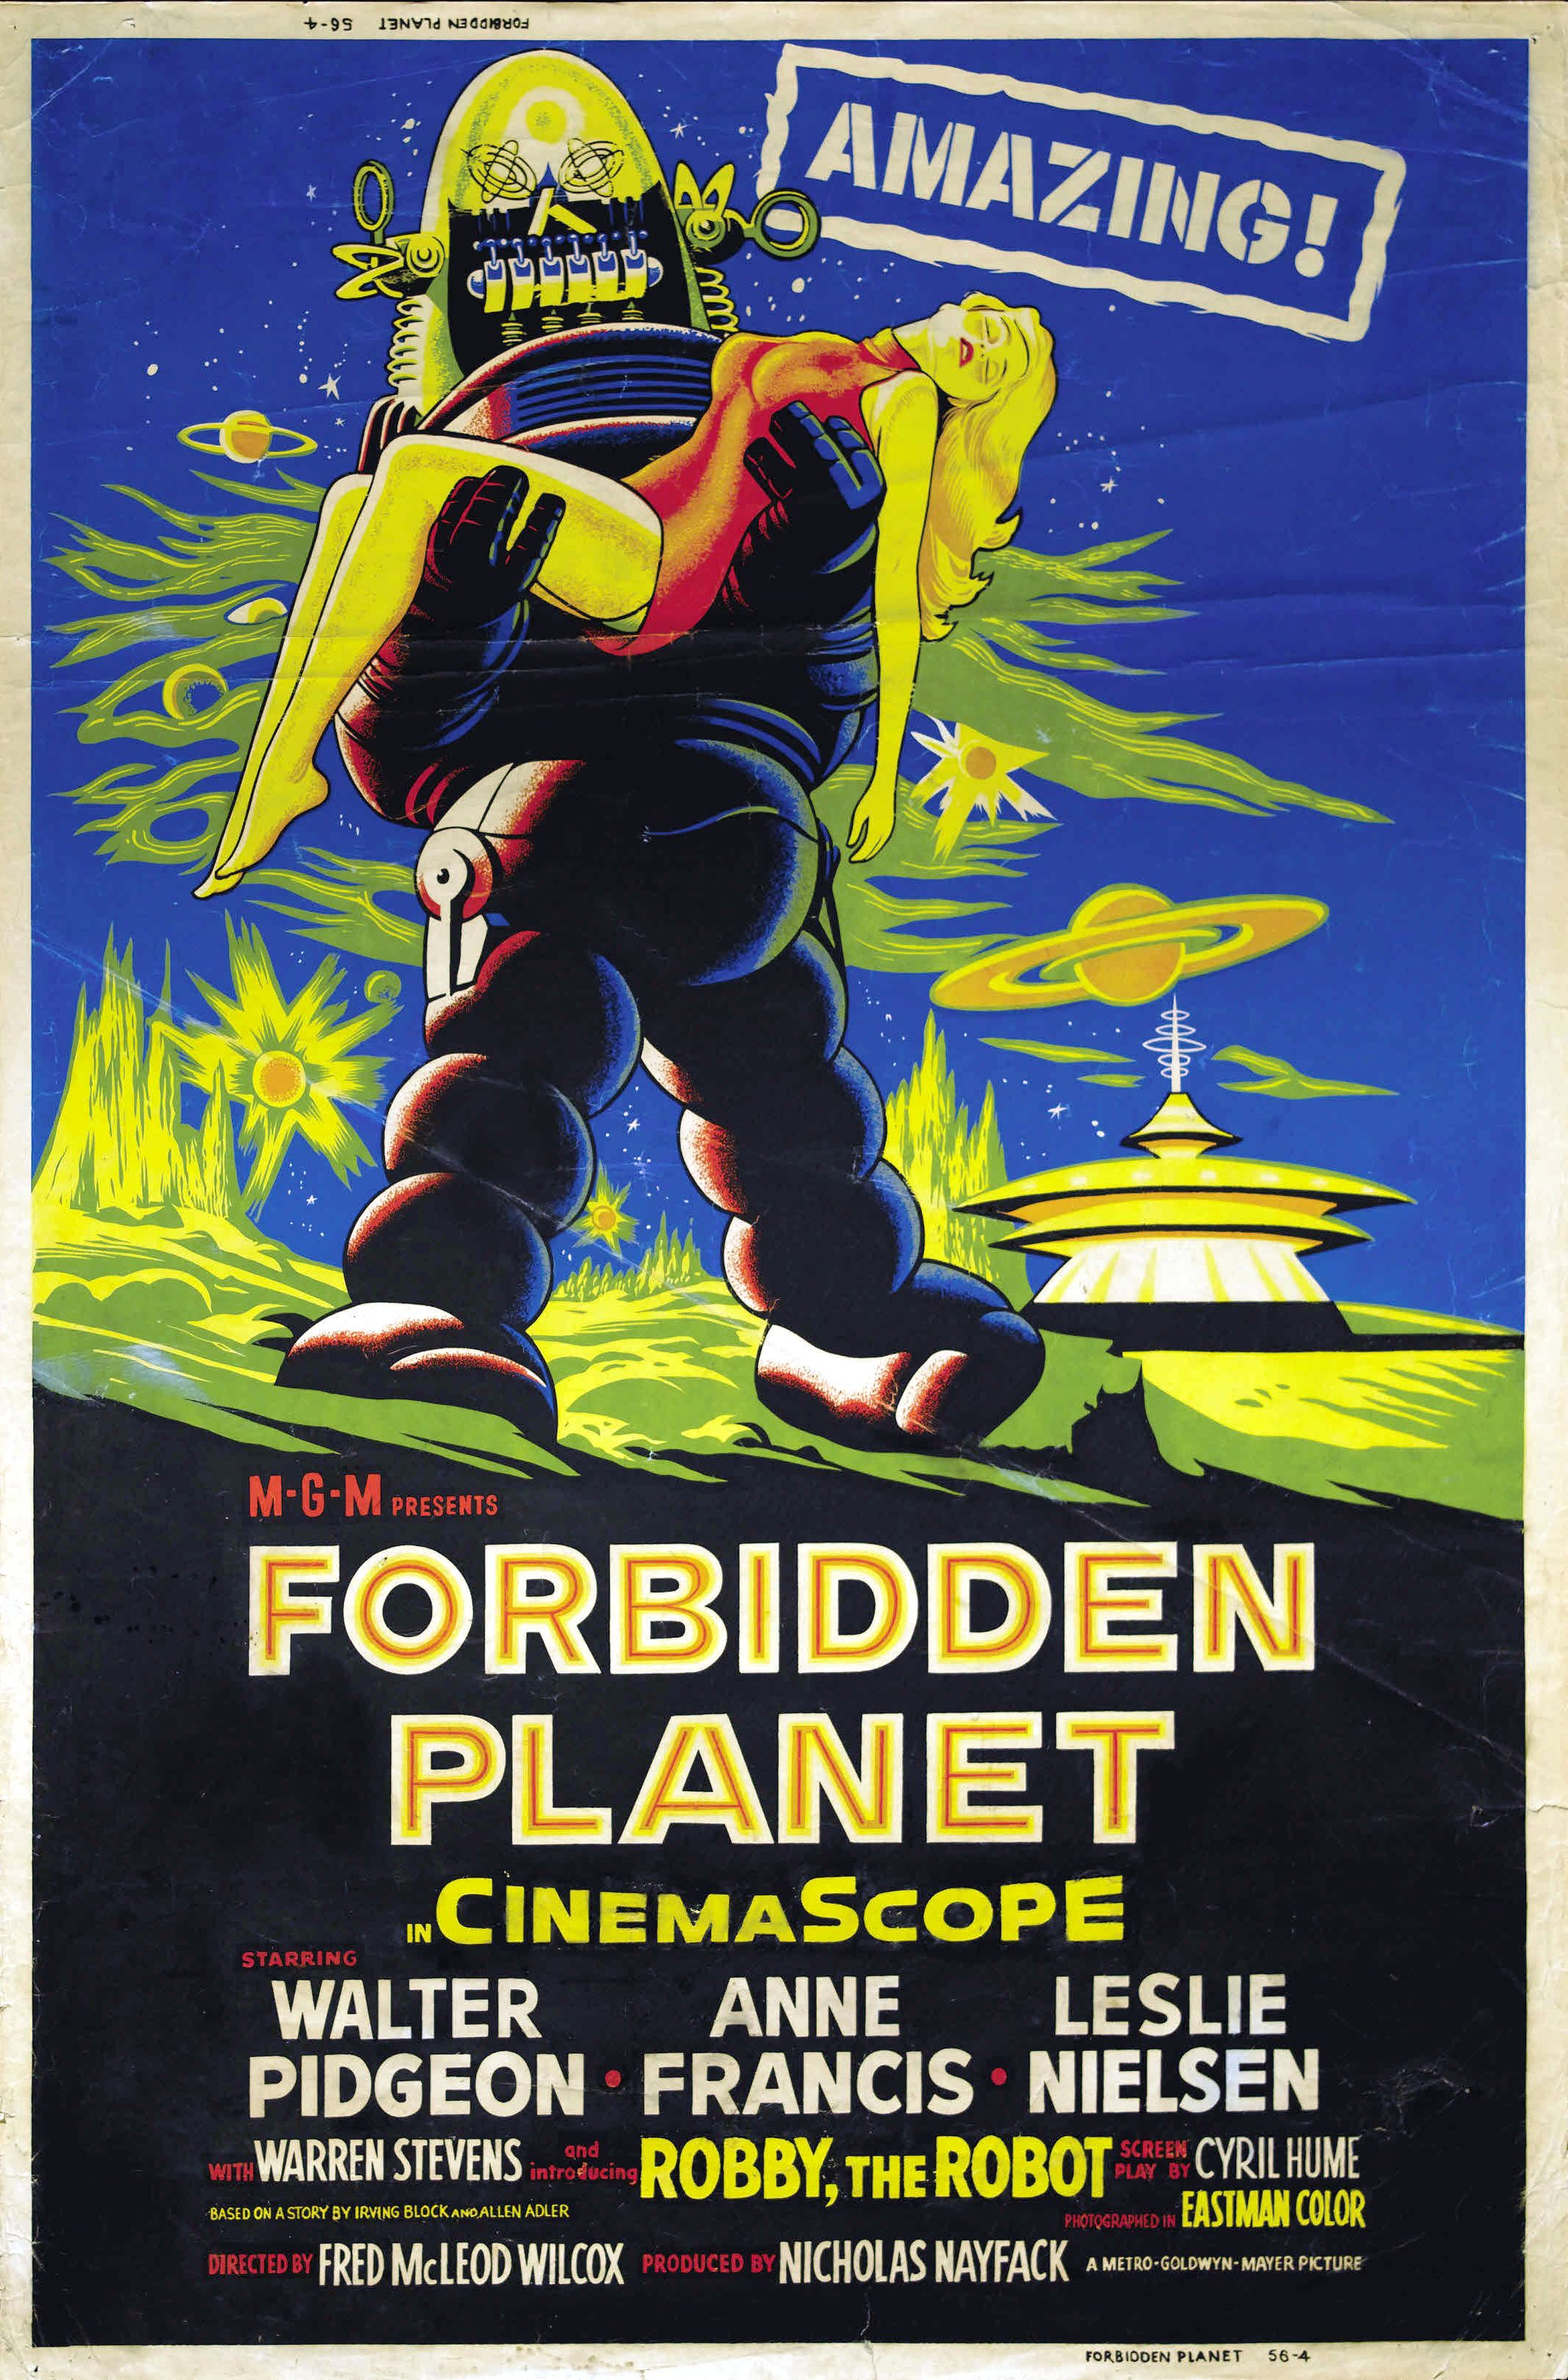 Robbie the Robot carries an unconscious blond woman on the poster for Forbidden Planet.